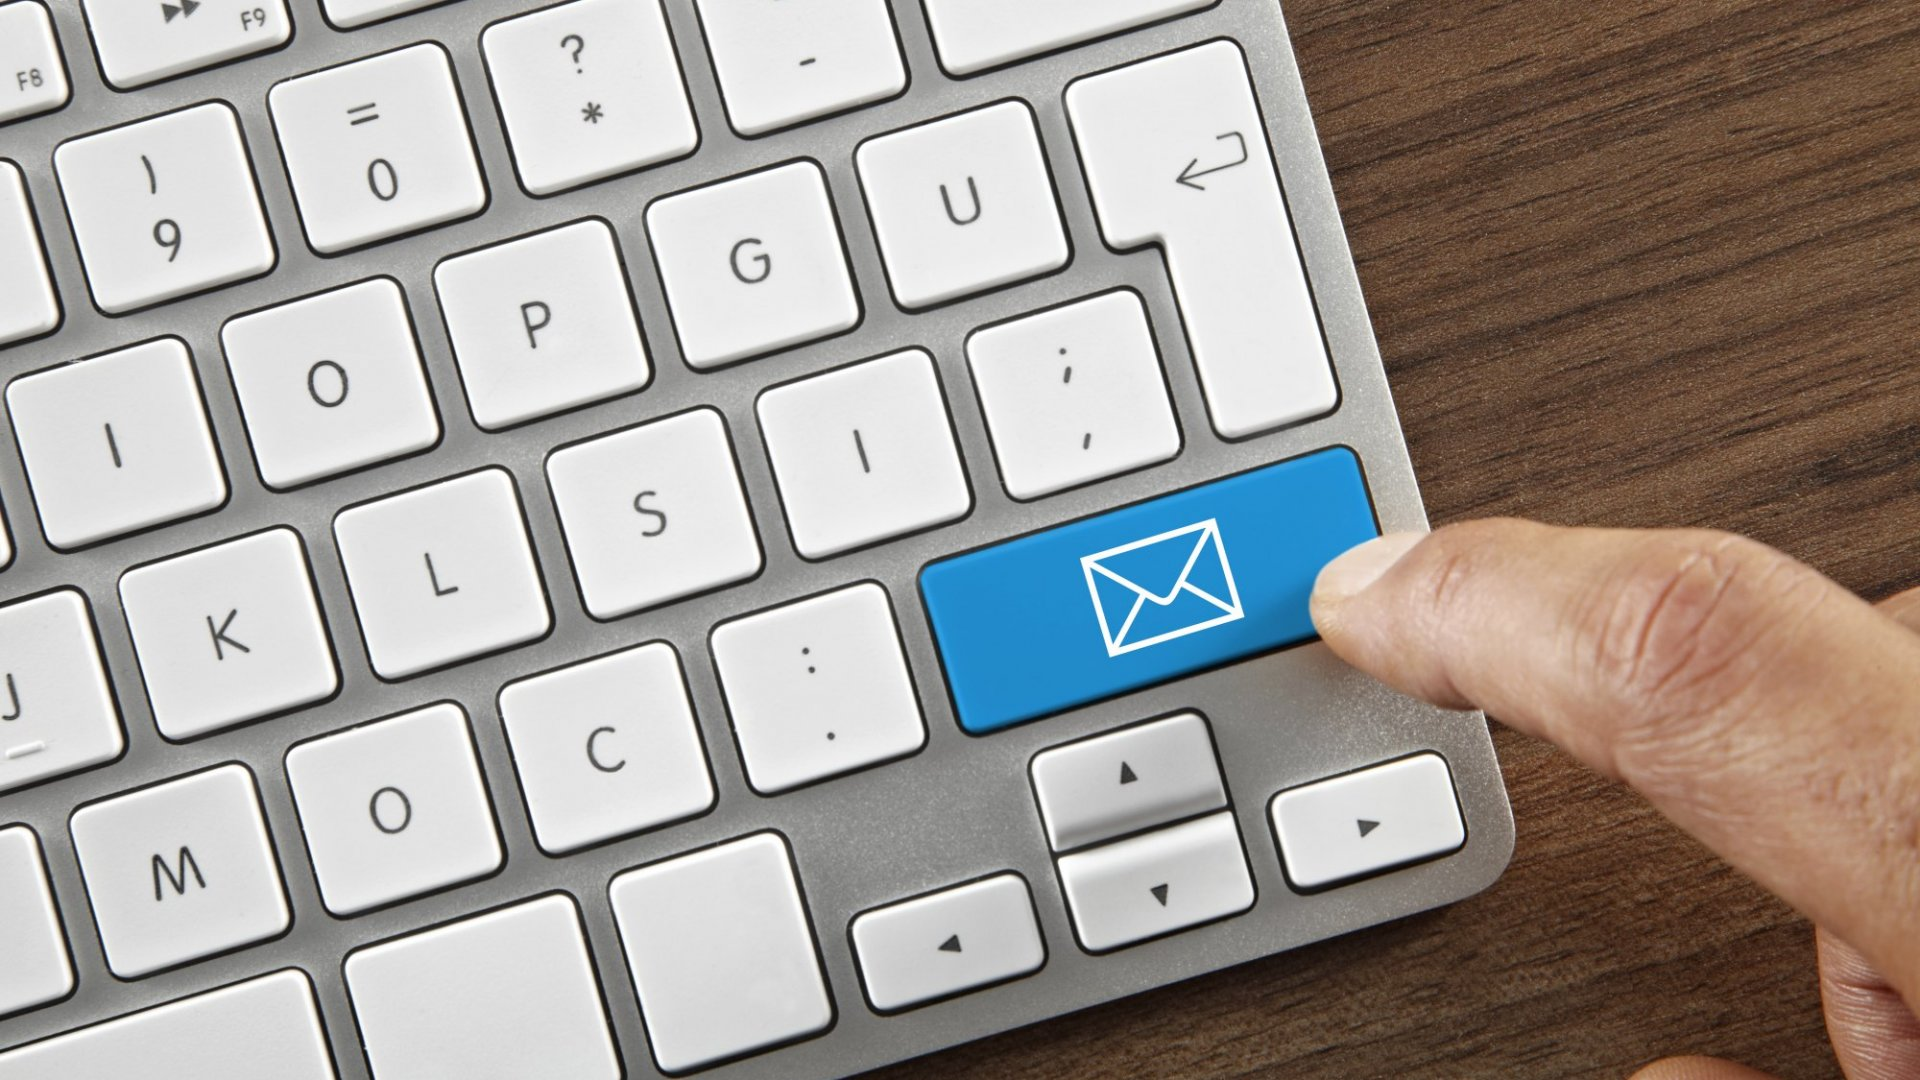 3 Fast Ways to Decide If You Should Reply an Email (or Not)